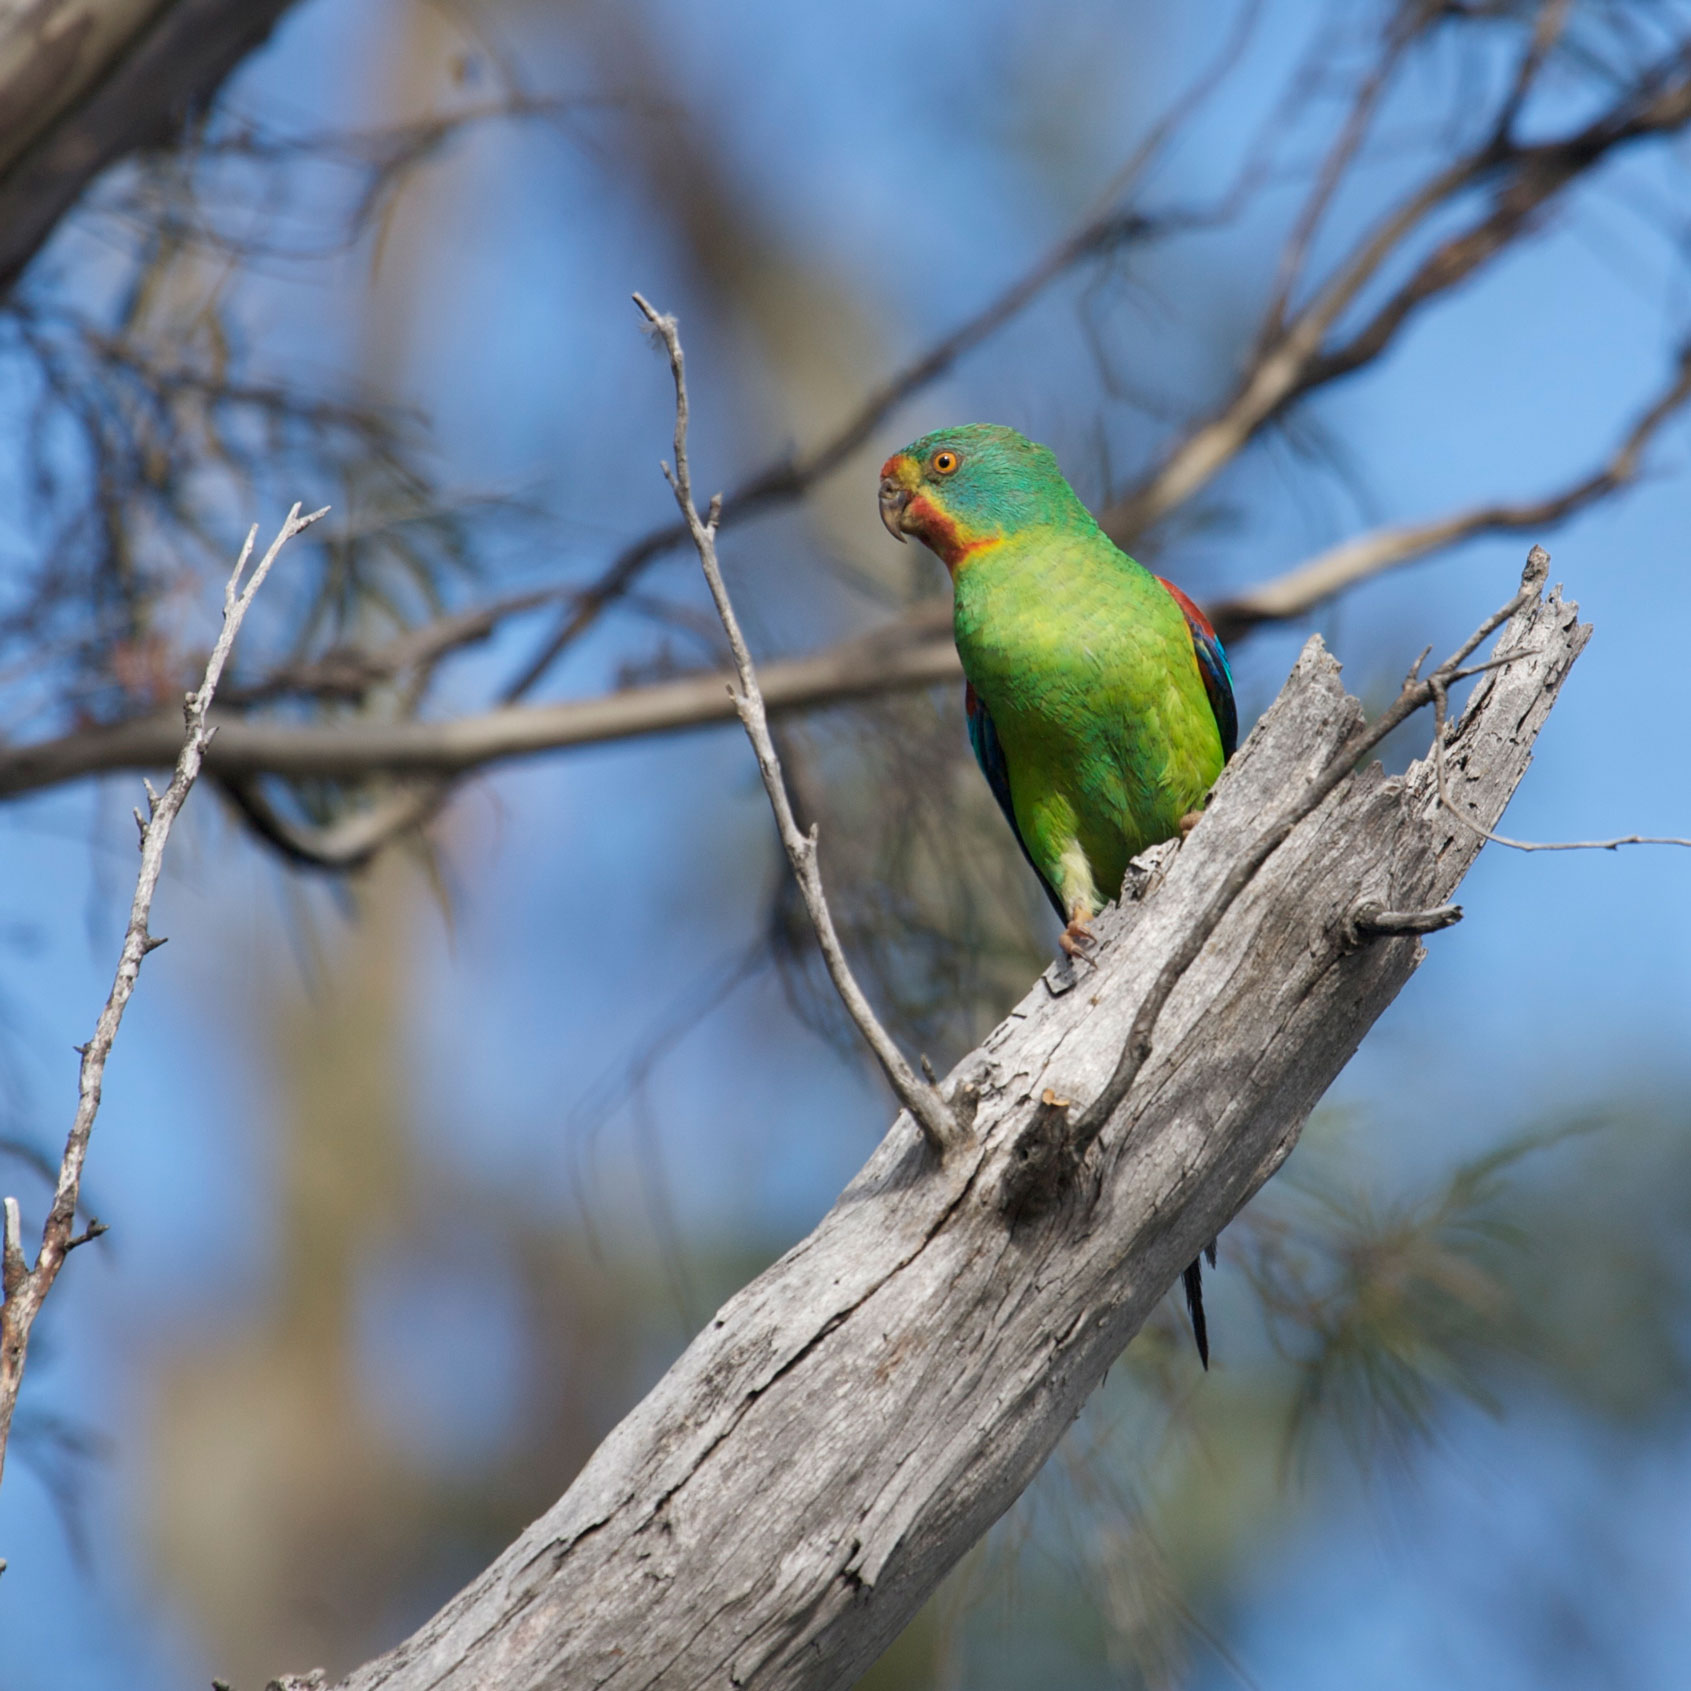 swift-parrot-female-at-nest-(1).jpg